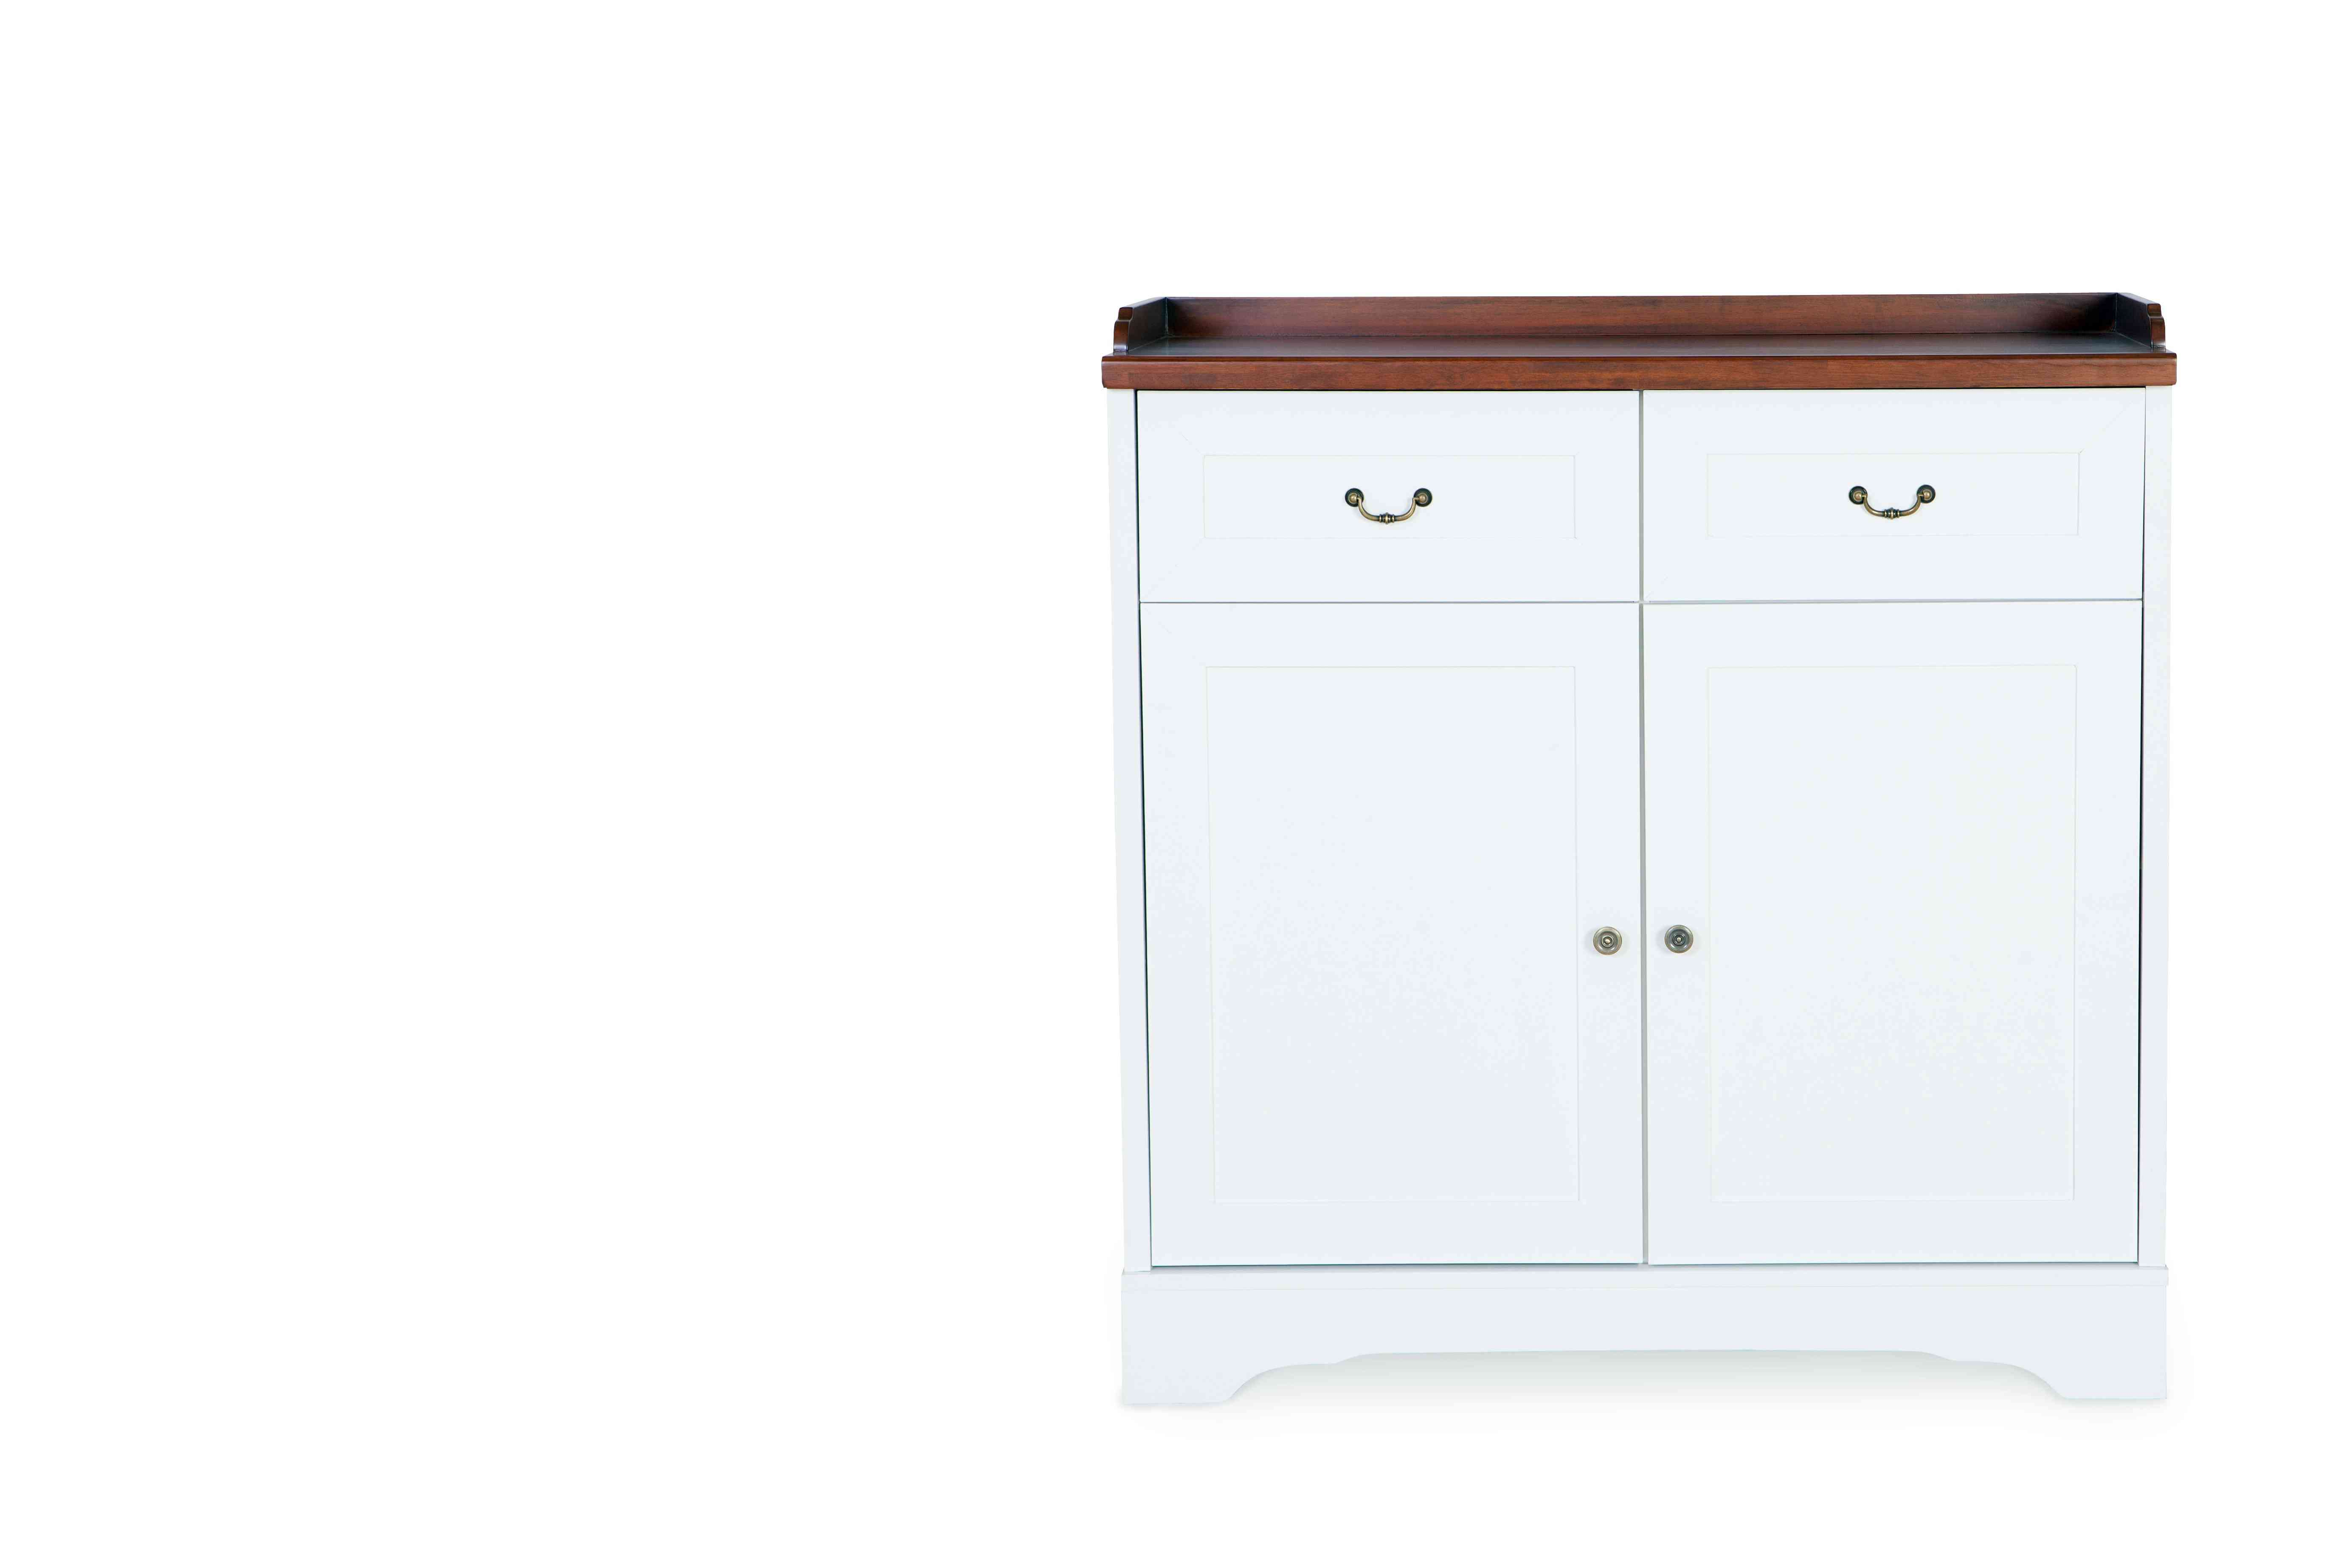 A basic white cabinet